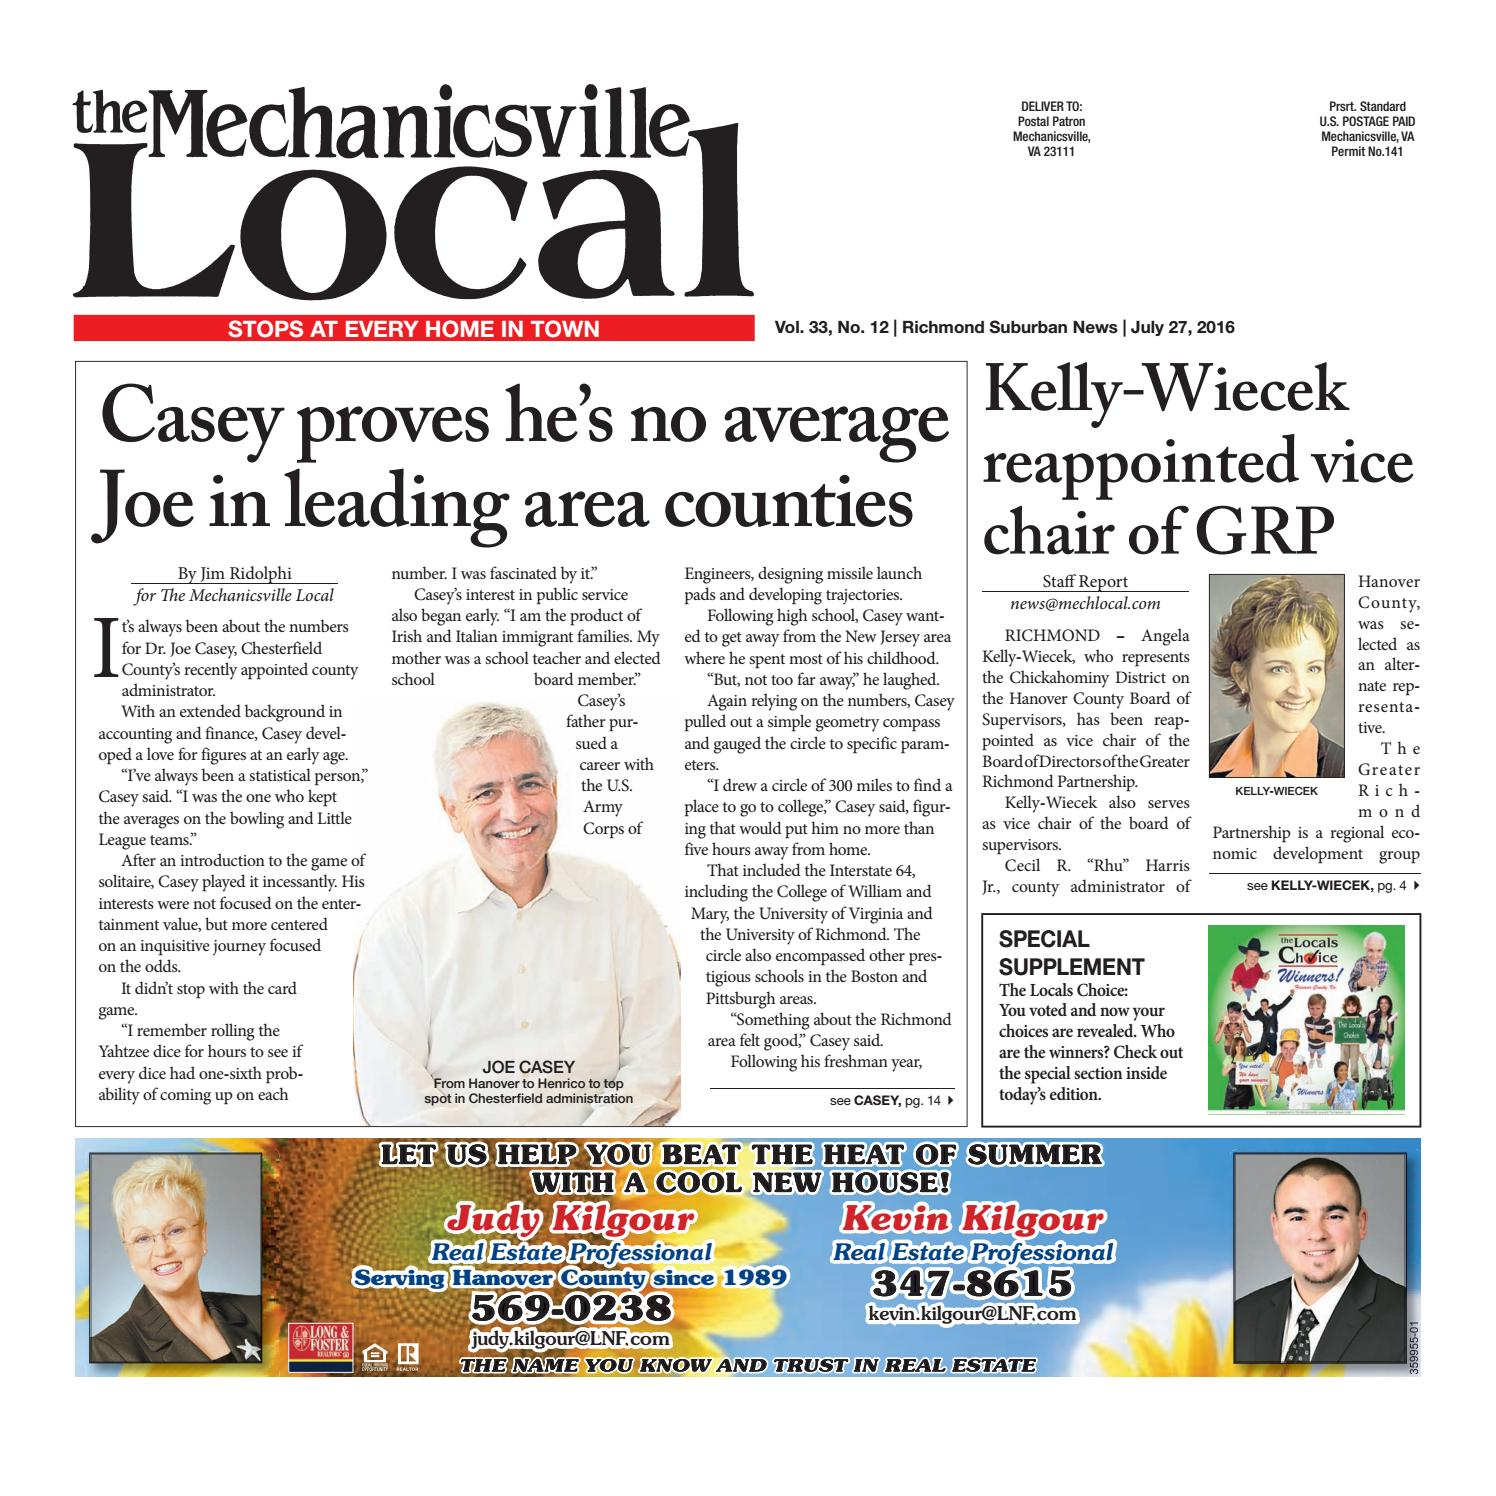 07 27 16 By The Mechanicsville Local